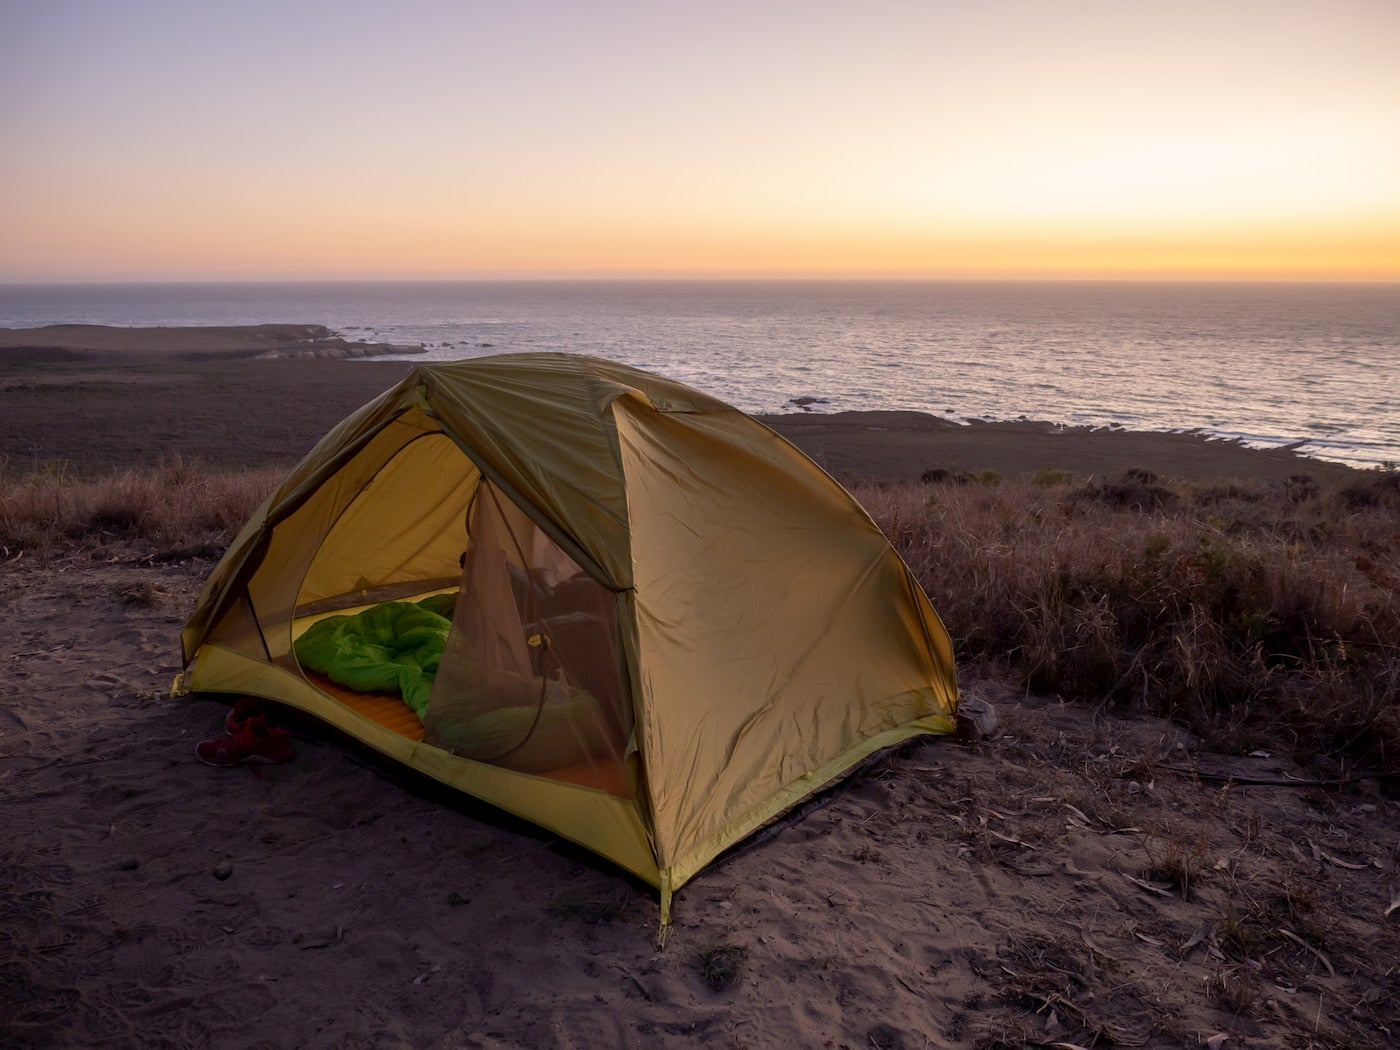 Tent set up in the dunes beside the pacific ocean at sunset.